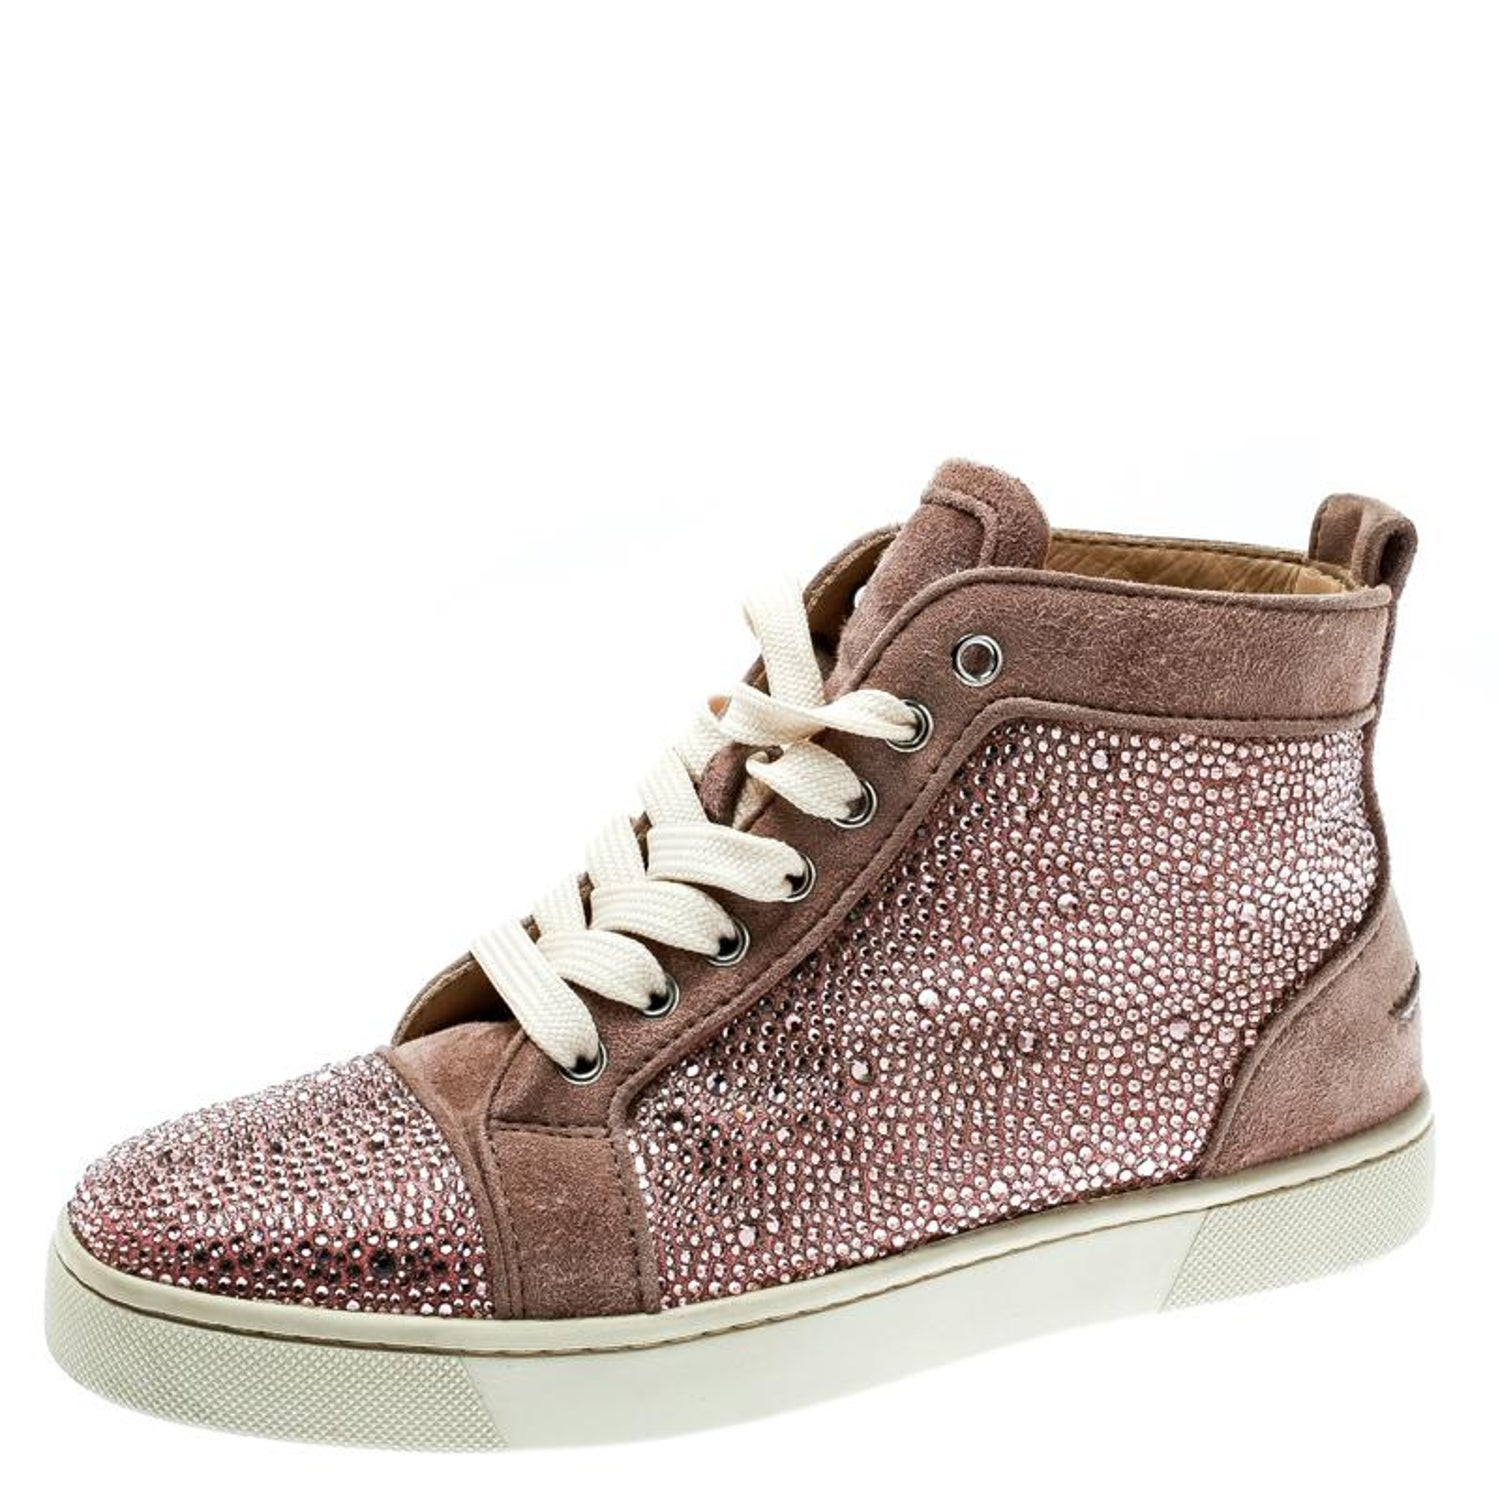 sneakers for cheap 8255e bc2bf Christian Louboutin Beige Strass Suede Louis High Top Sneakers Size 37